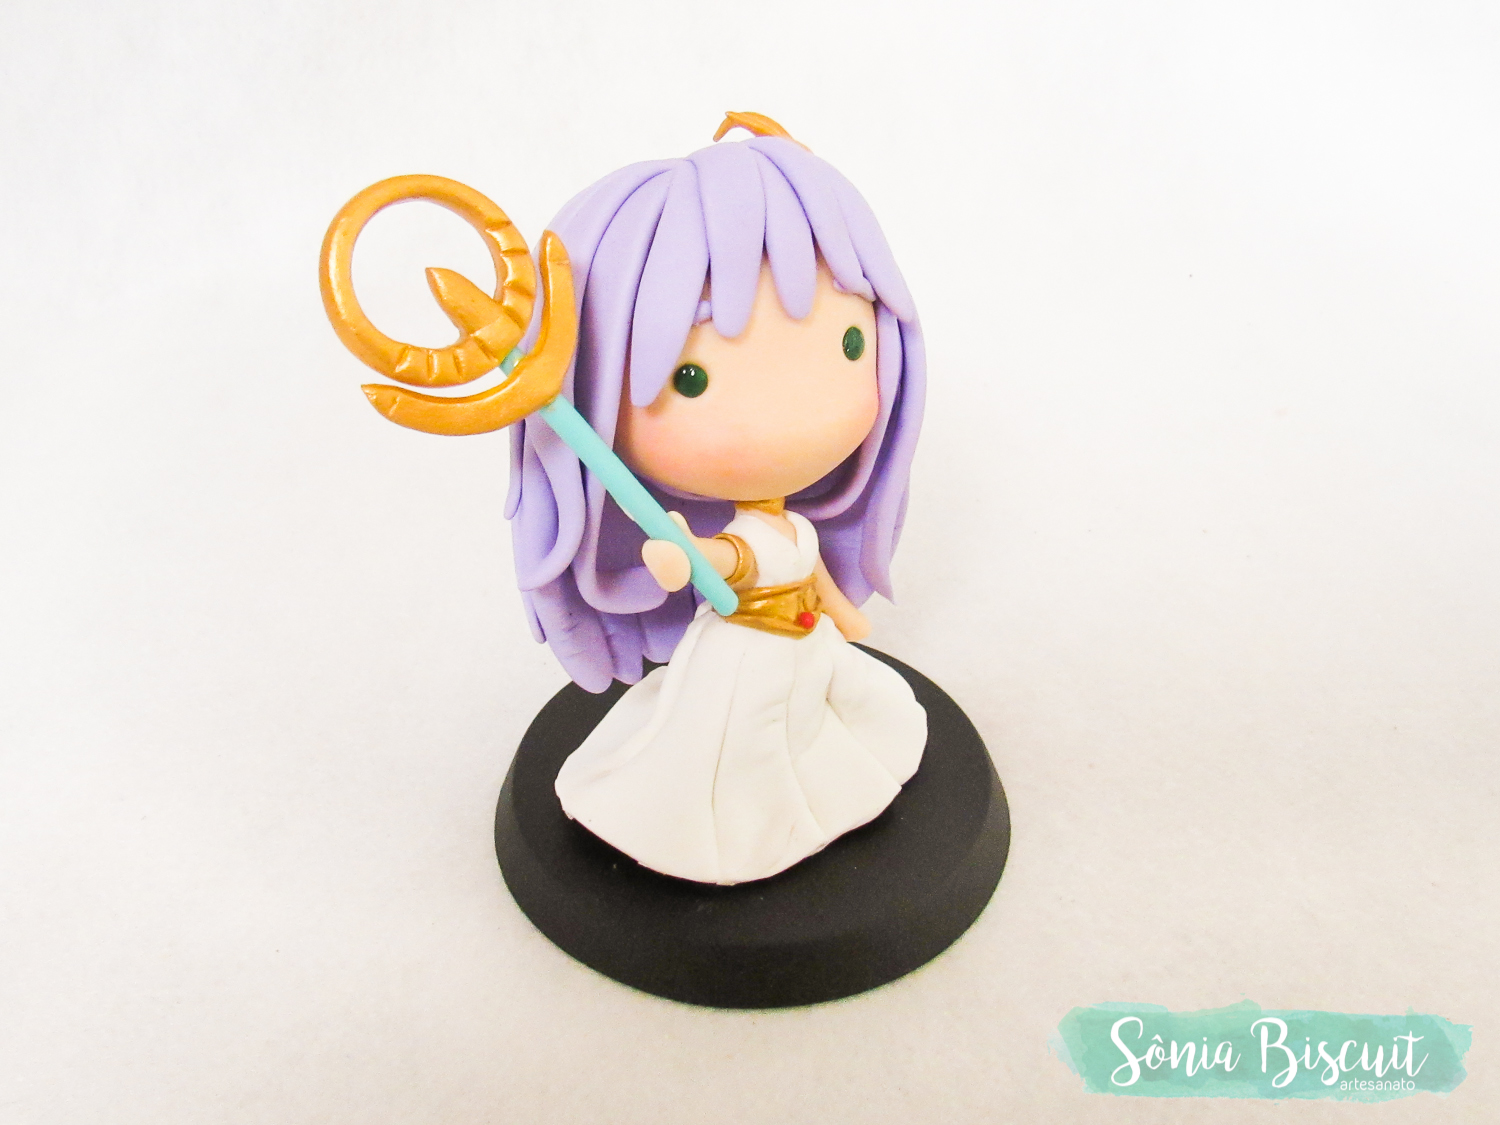 Biscuit, Sonia Biscuit, Saori, Athena, Cavaleiros do Zodiaco, Toy, Toy Biscuit